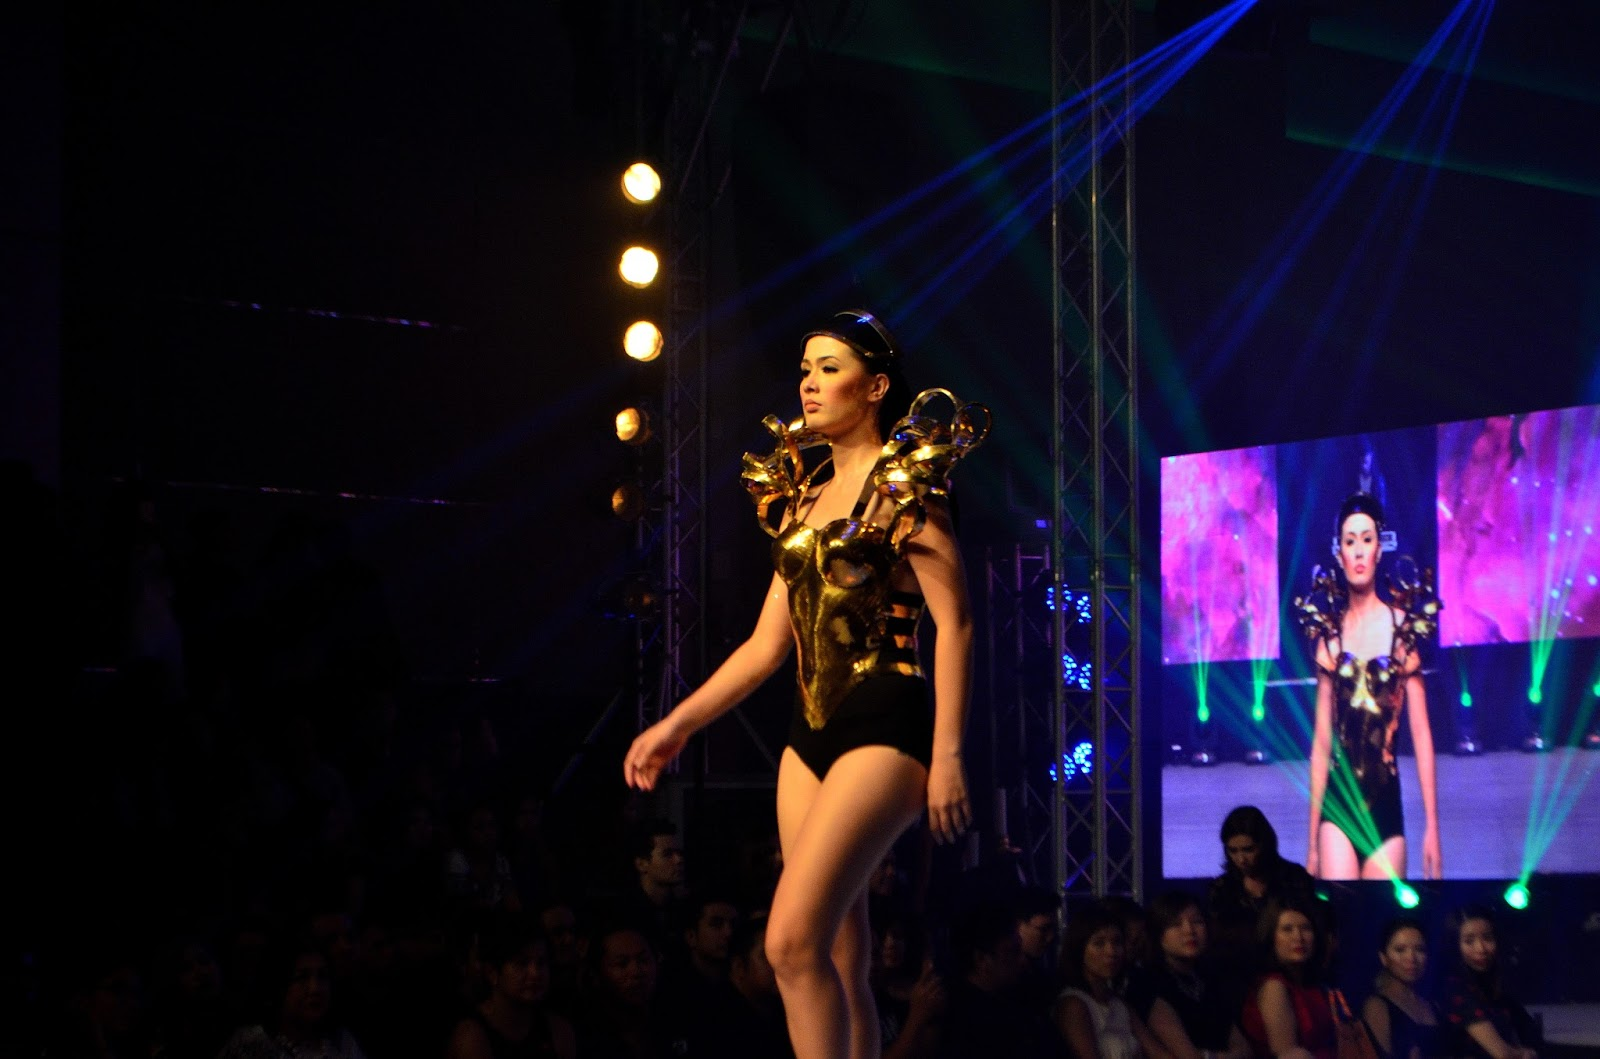 ILLUMINATE: Ignite the Light Rocky Gathercole collection